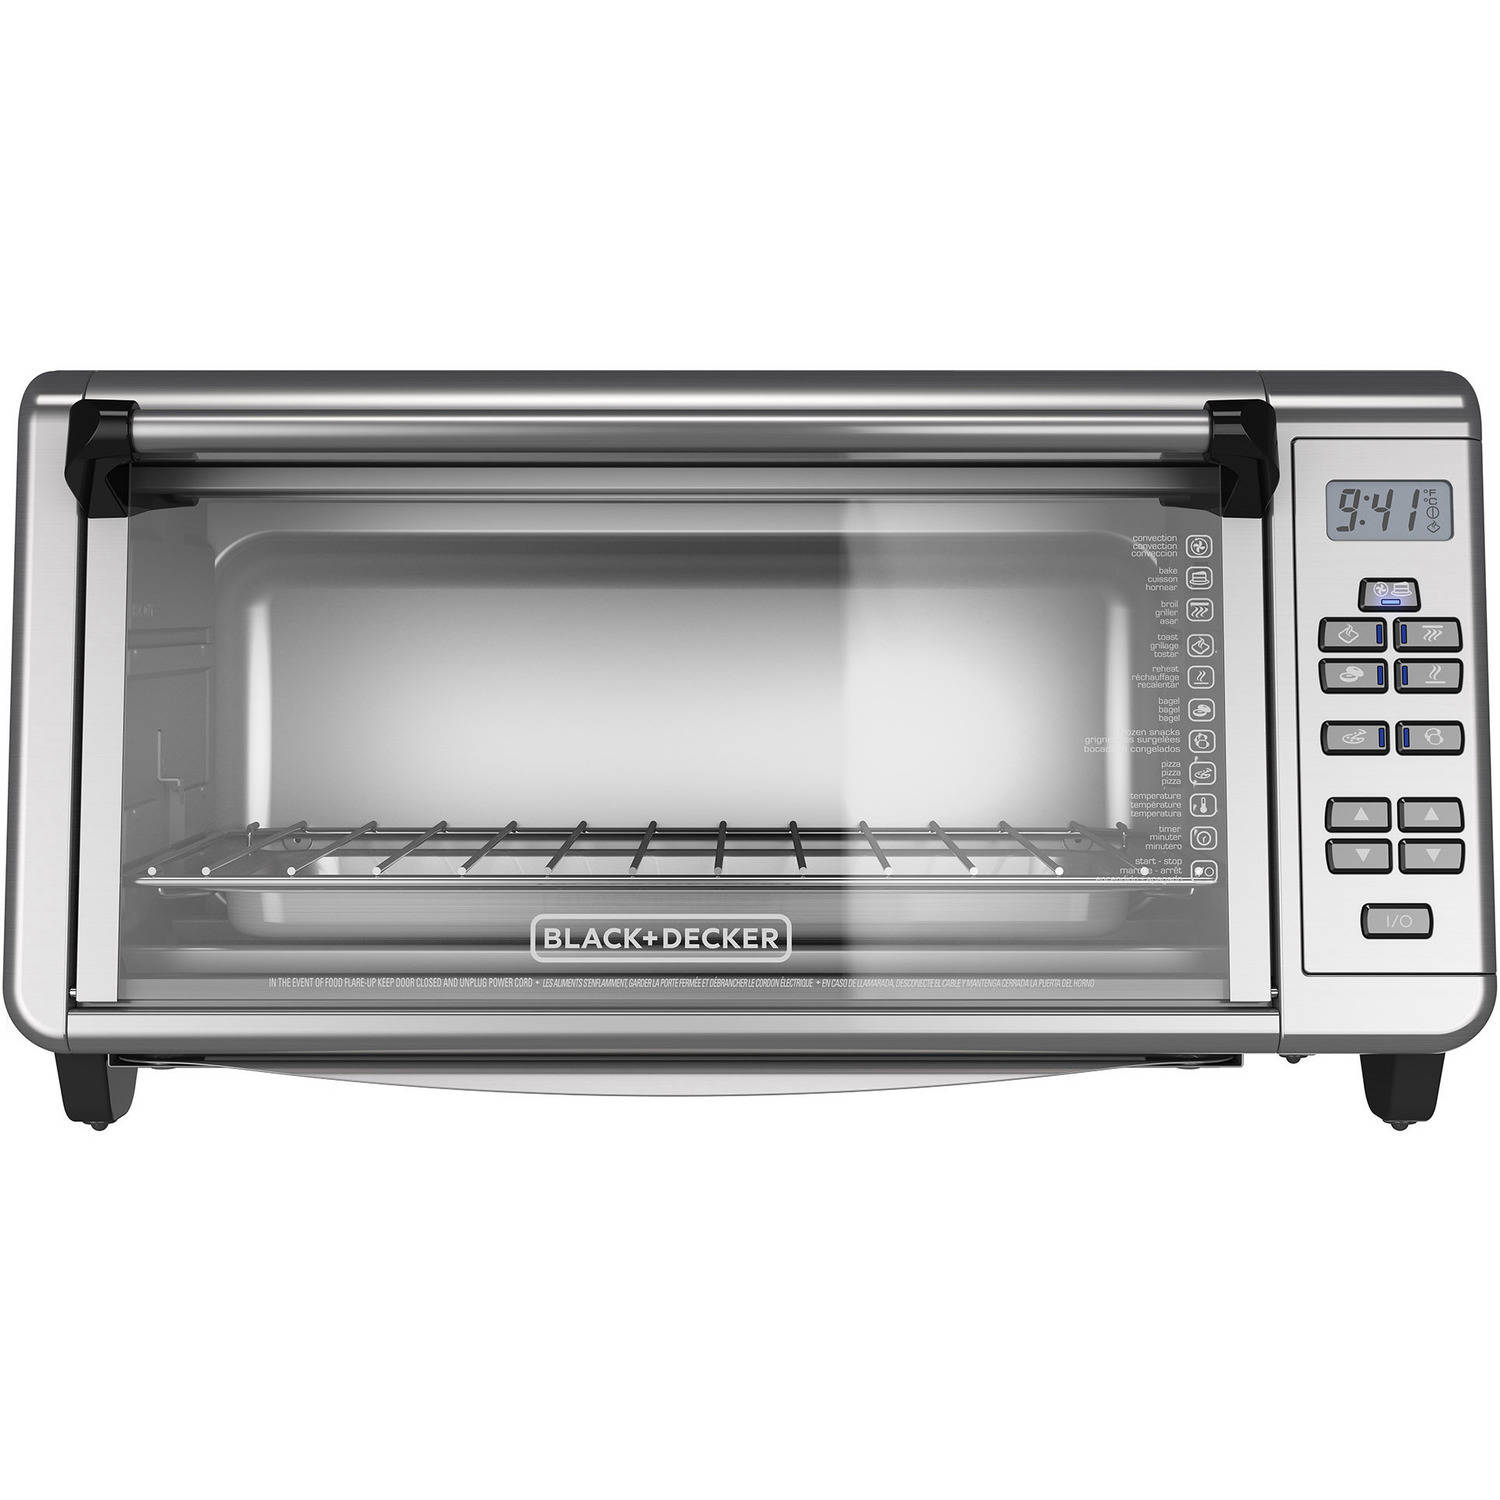 BLACK+DECKER Extra Wide Digital Toaster Convection Oven, TO3290XG by Black & Decker